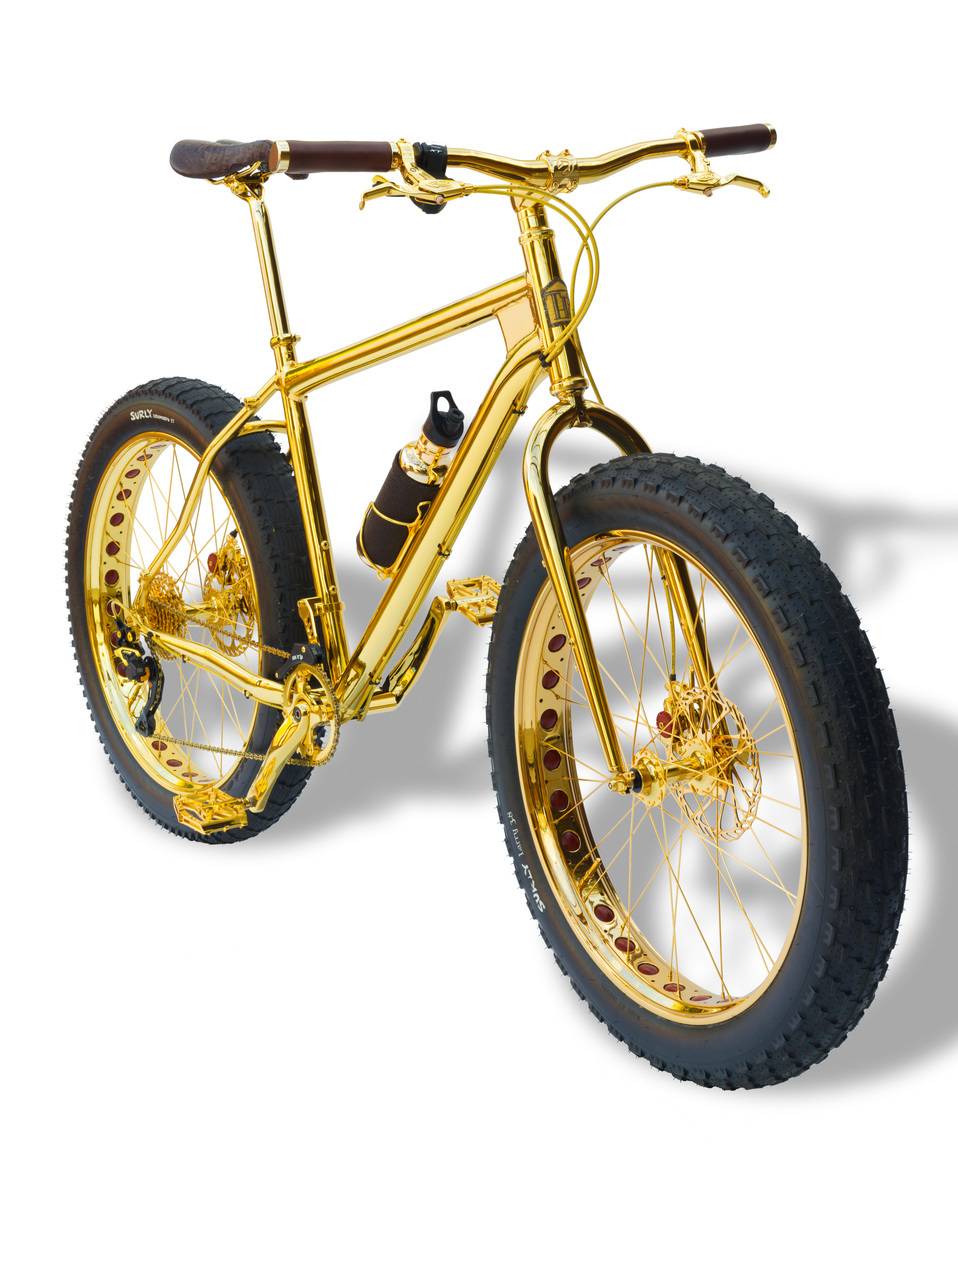 world s most expensive bike costs 1 million and is. Black Bedroom Furniture Sets. Home Design Ideas